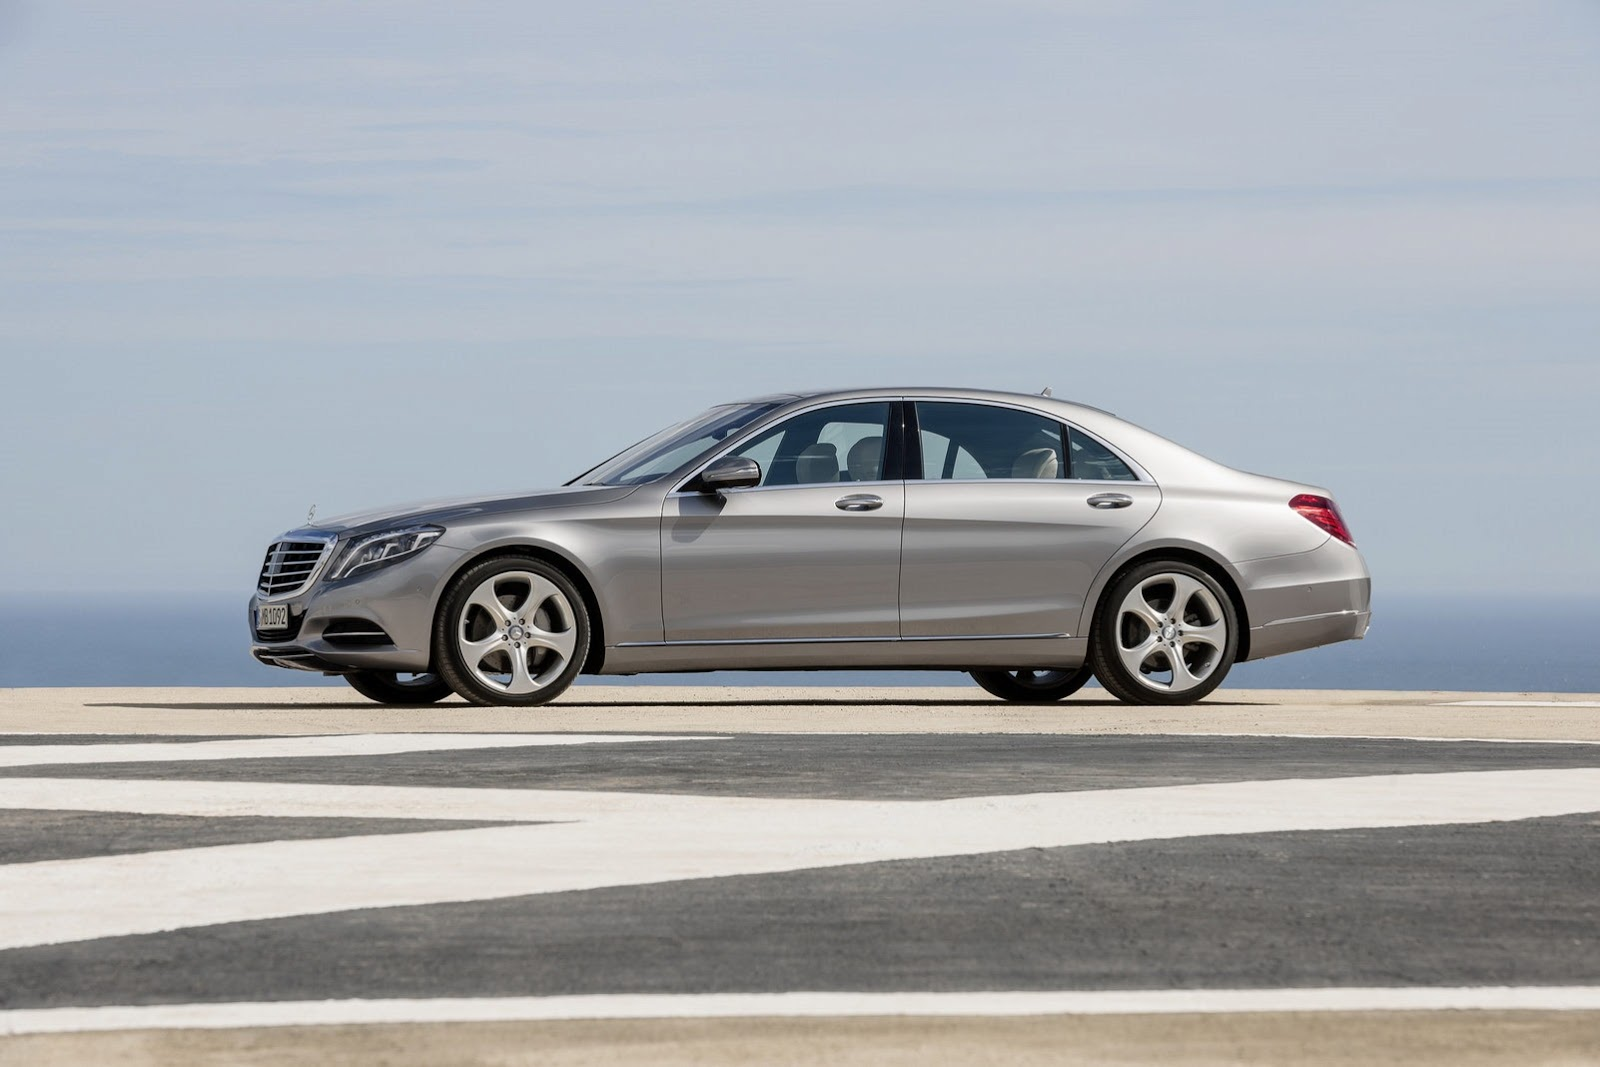 2014 Mercedes Benz S-Class - SMADE MEDIA (43)